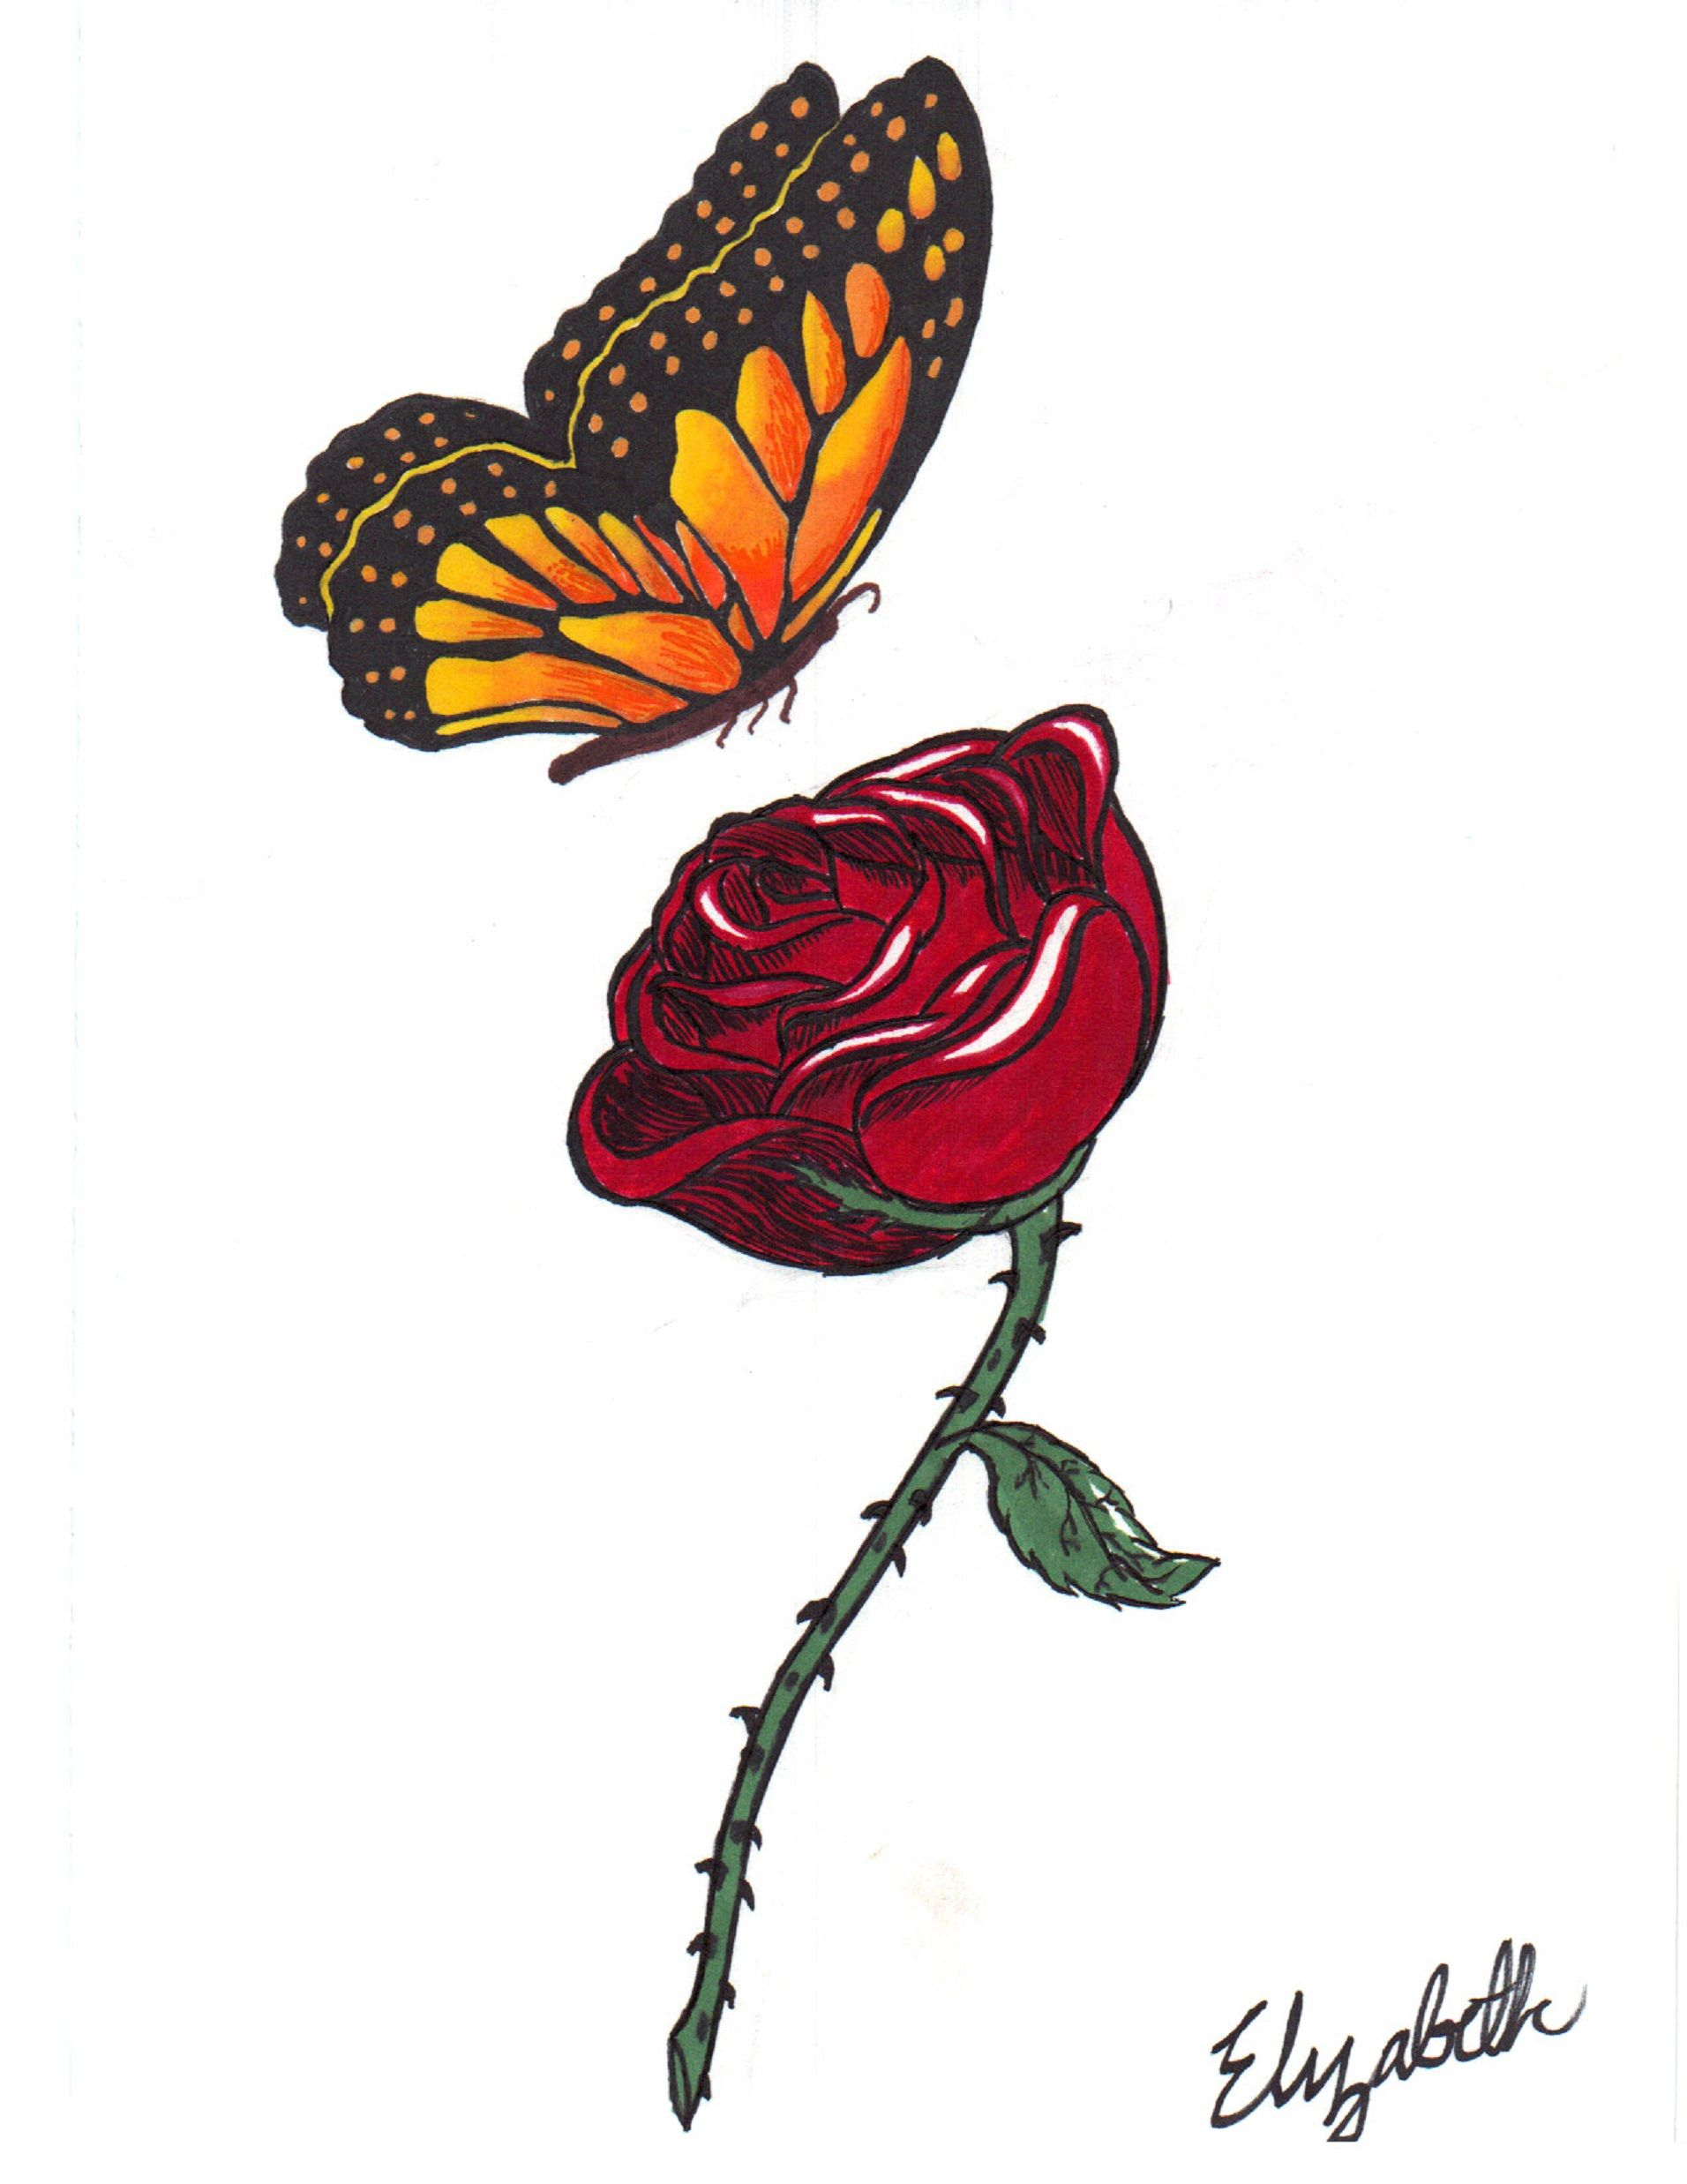 Monarch Butterfly With Rose By Cutetiger123 D5396tr Jpg 1912 2475 Butterfly Tattoo Butterfly Tattoo Designs Tribal Butterfly Tattoo